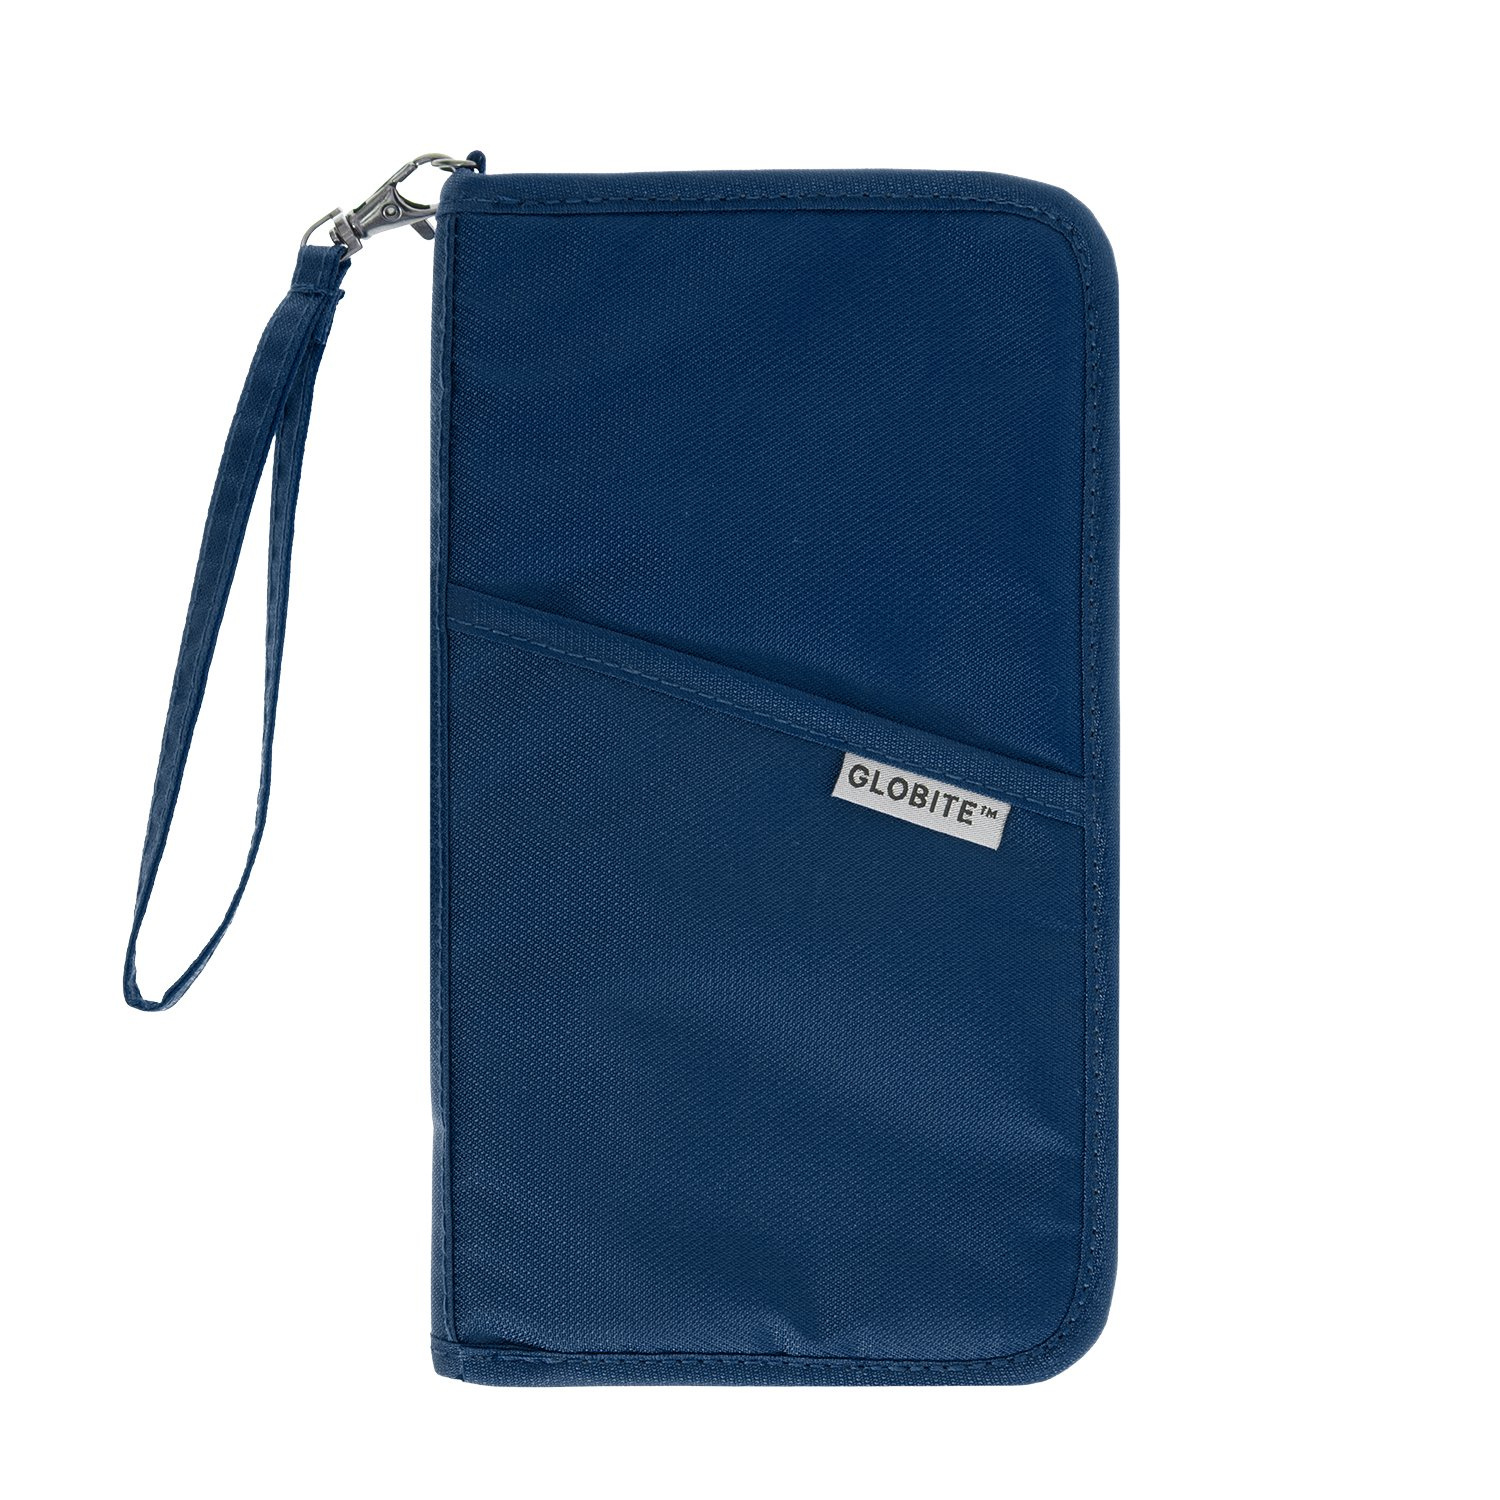 RFID Travel Wallet, Security for Your Passport, Credit Cards, IDs (Blue) by Globite Australia